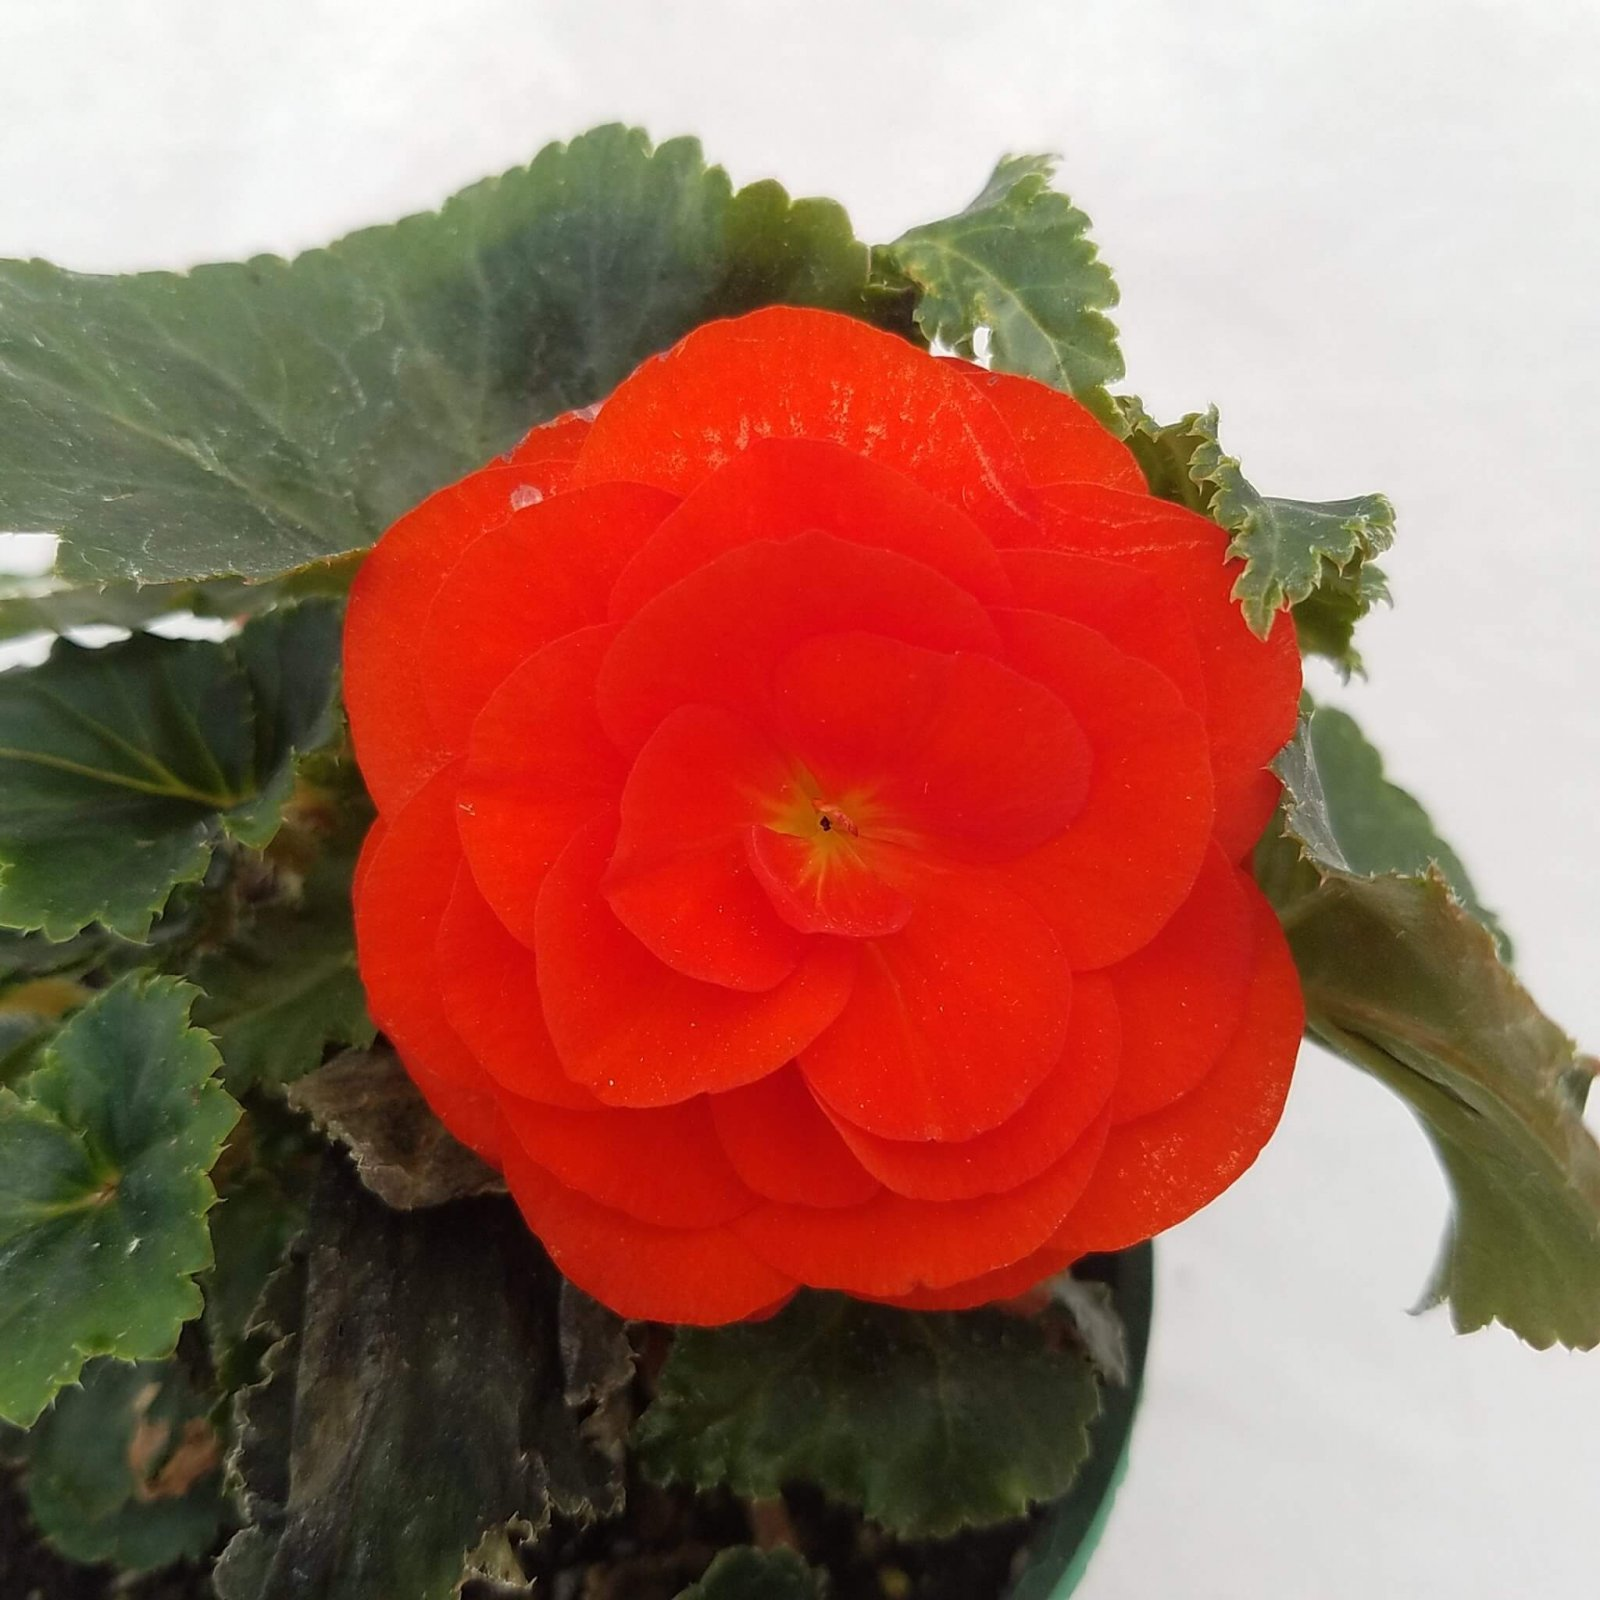 Begonia tuberosa 'Bliss Orange' - 4 1/2